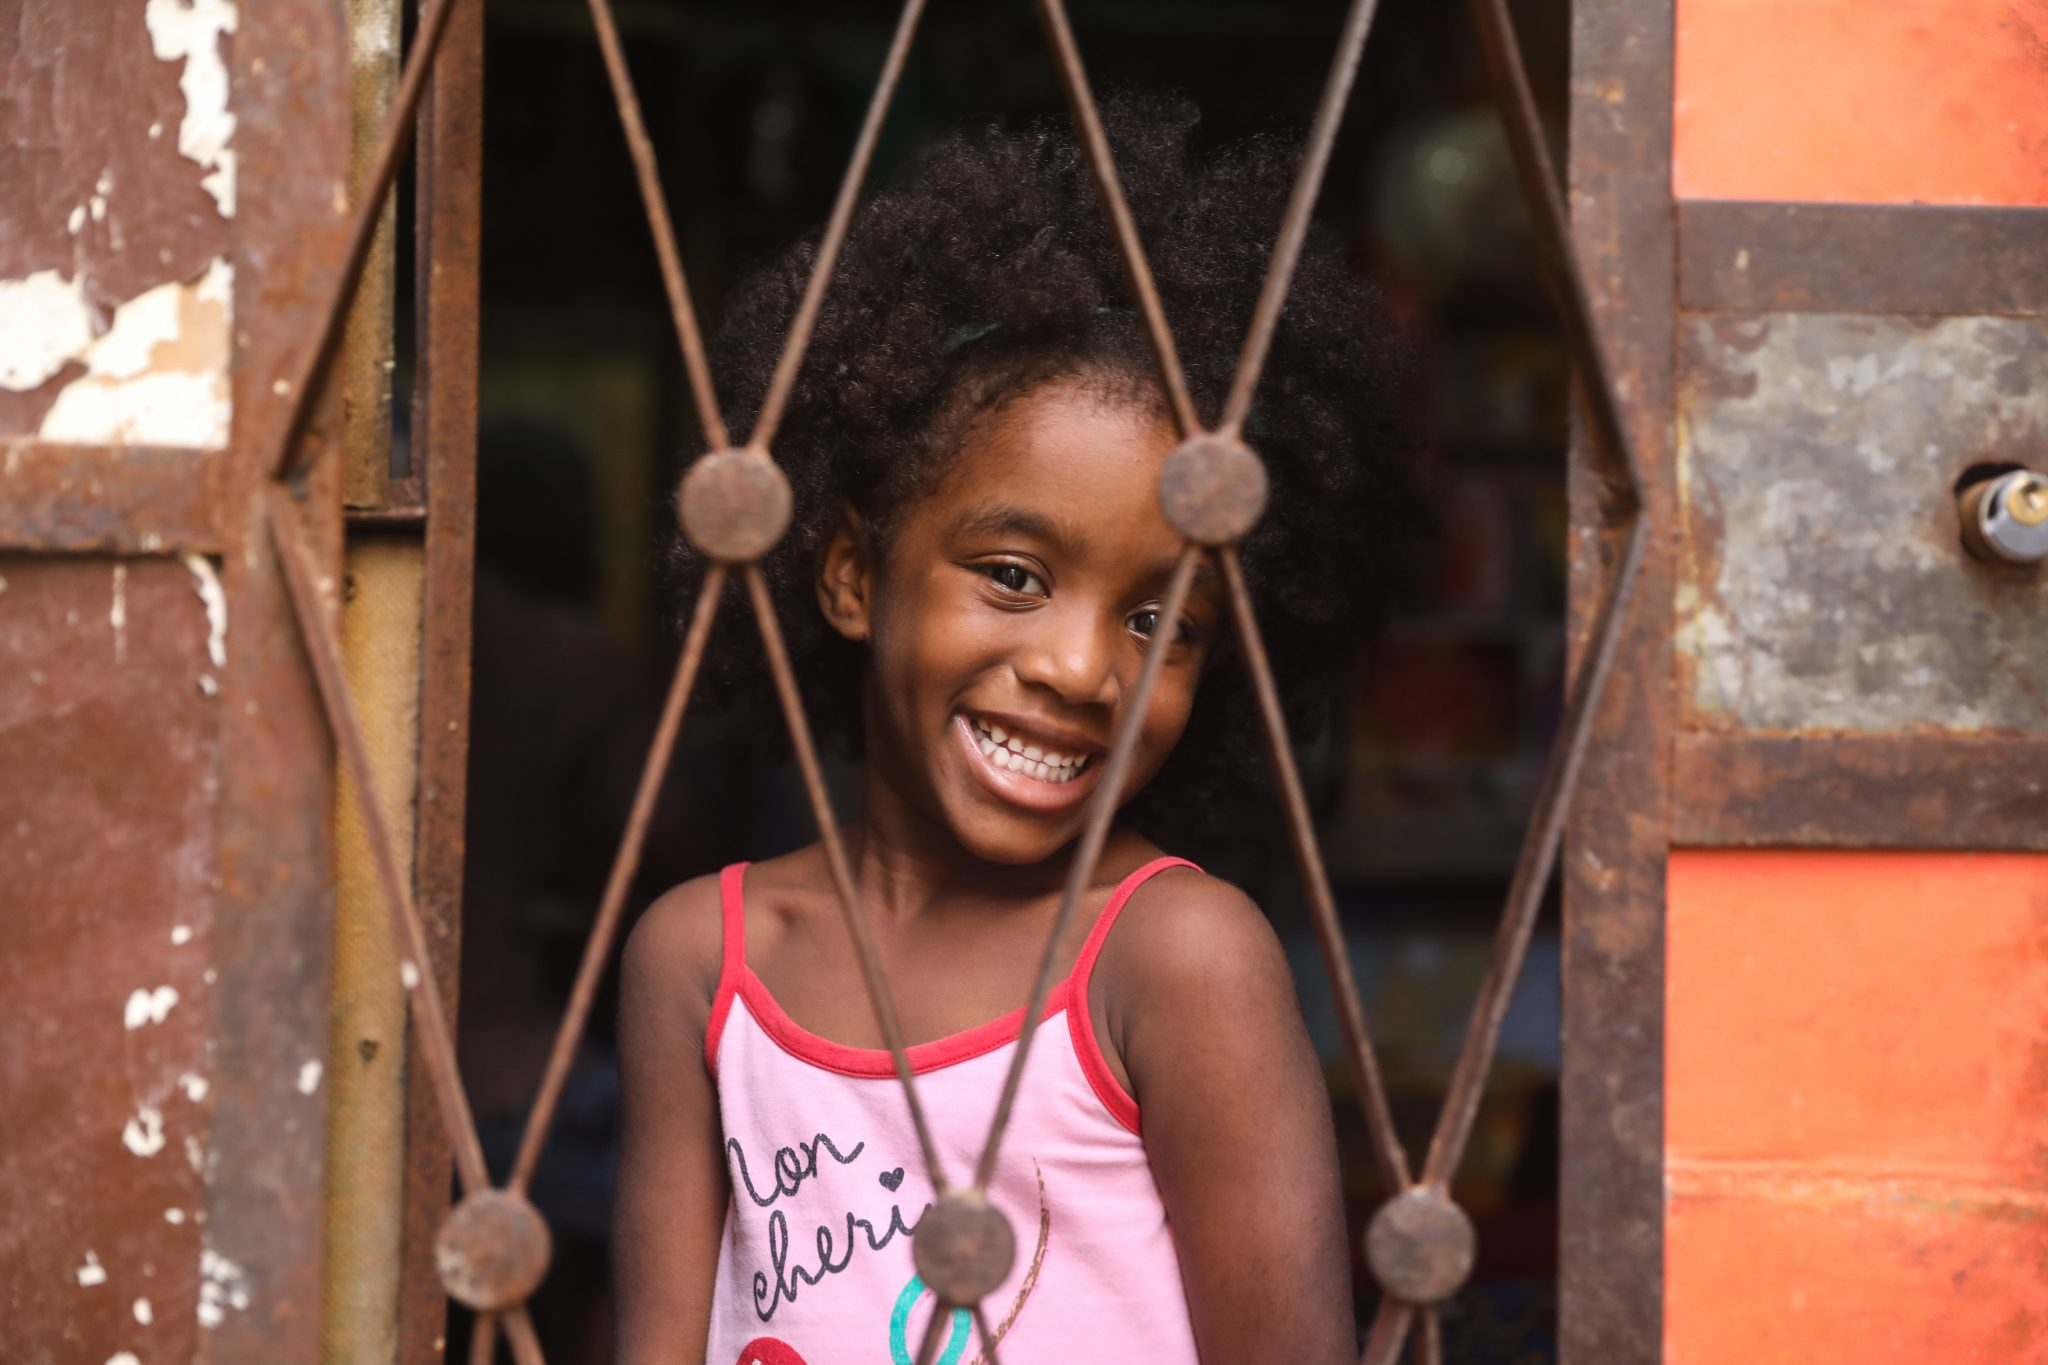 Adaimi, in her home in central Havana, Cuba. Photo by Luke Galati